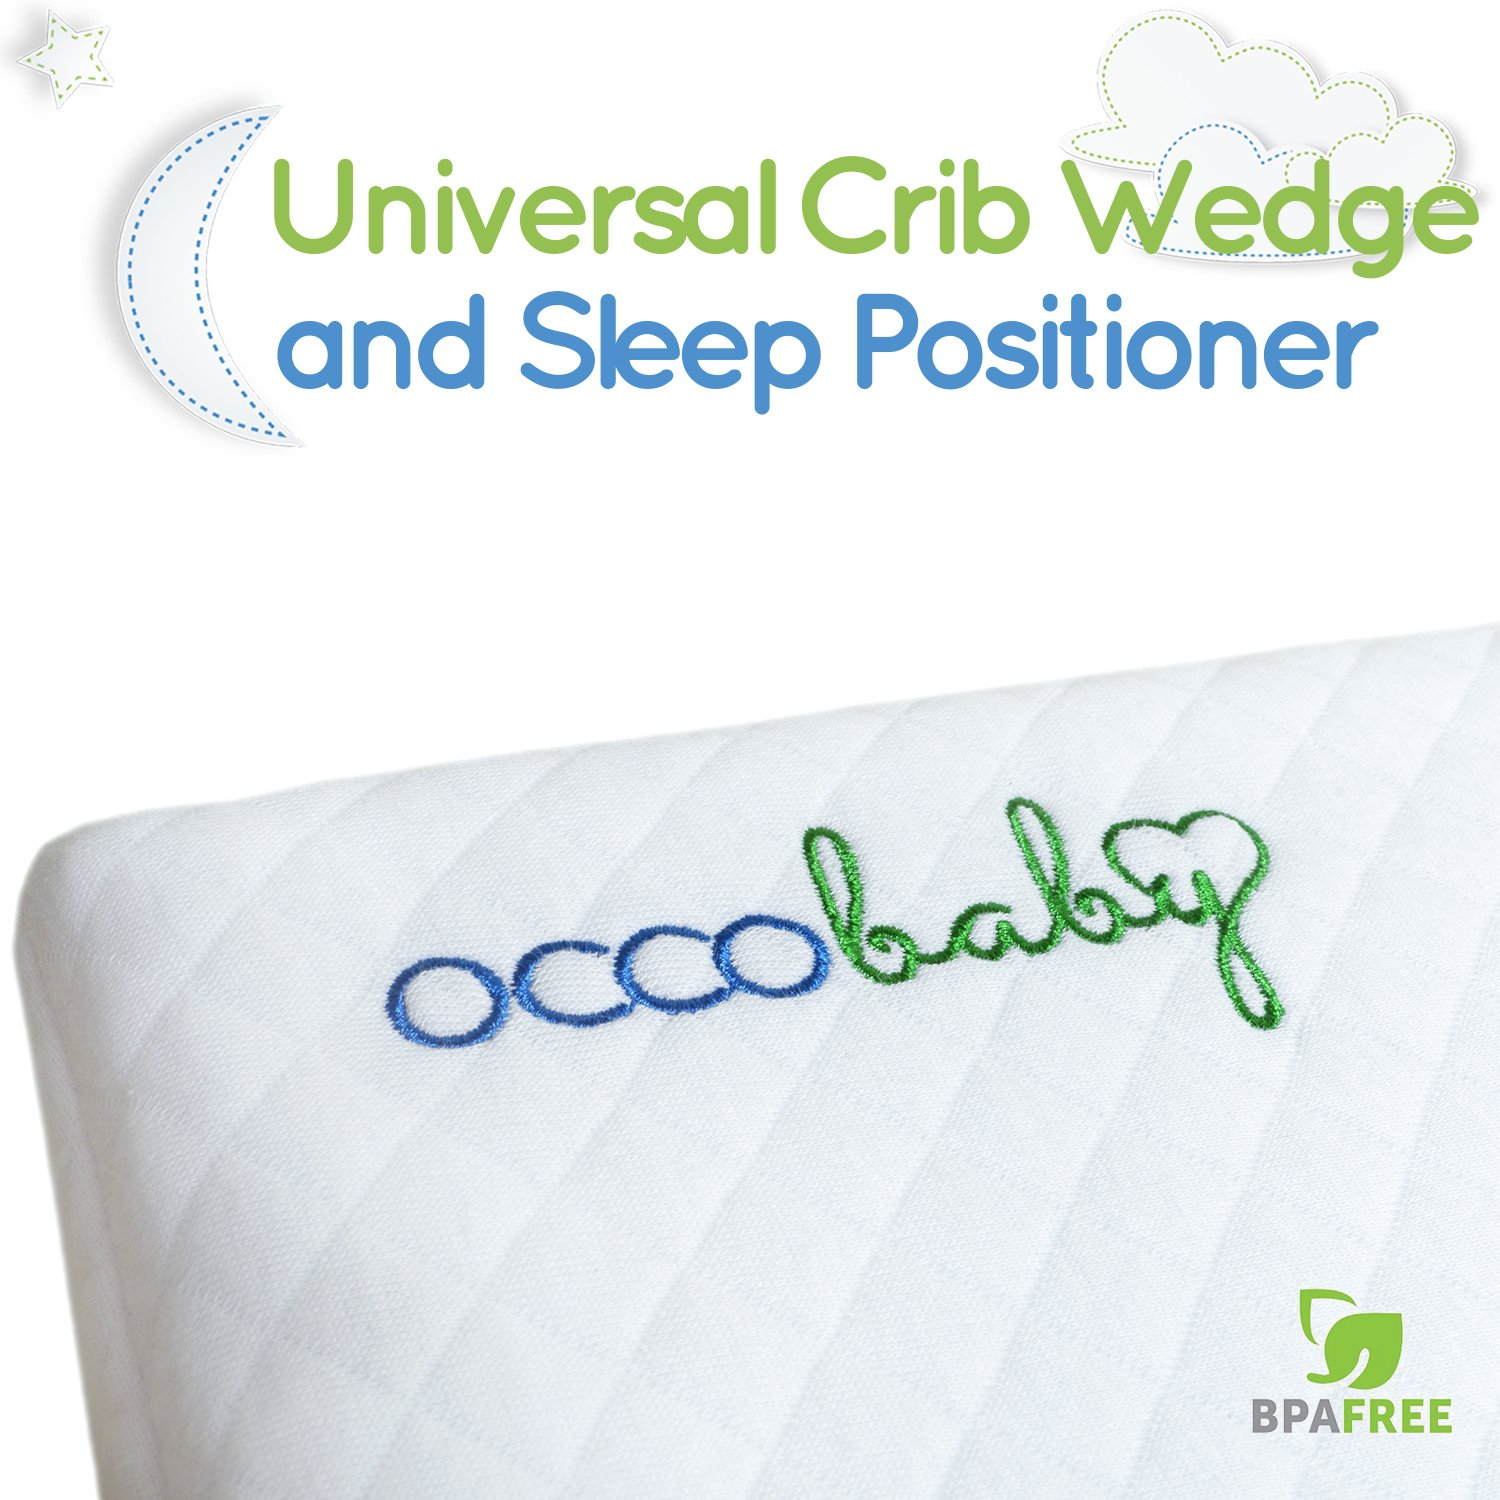 Crib wedges for babies - Amazon Com Occobaby Universal Crib Wedge And Sleep Positioner For Baby Mattress Waterproof Layer Handcrafted Cotton Removable Cover 12 Degree